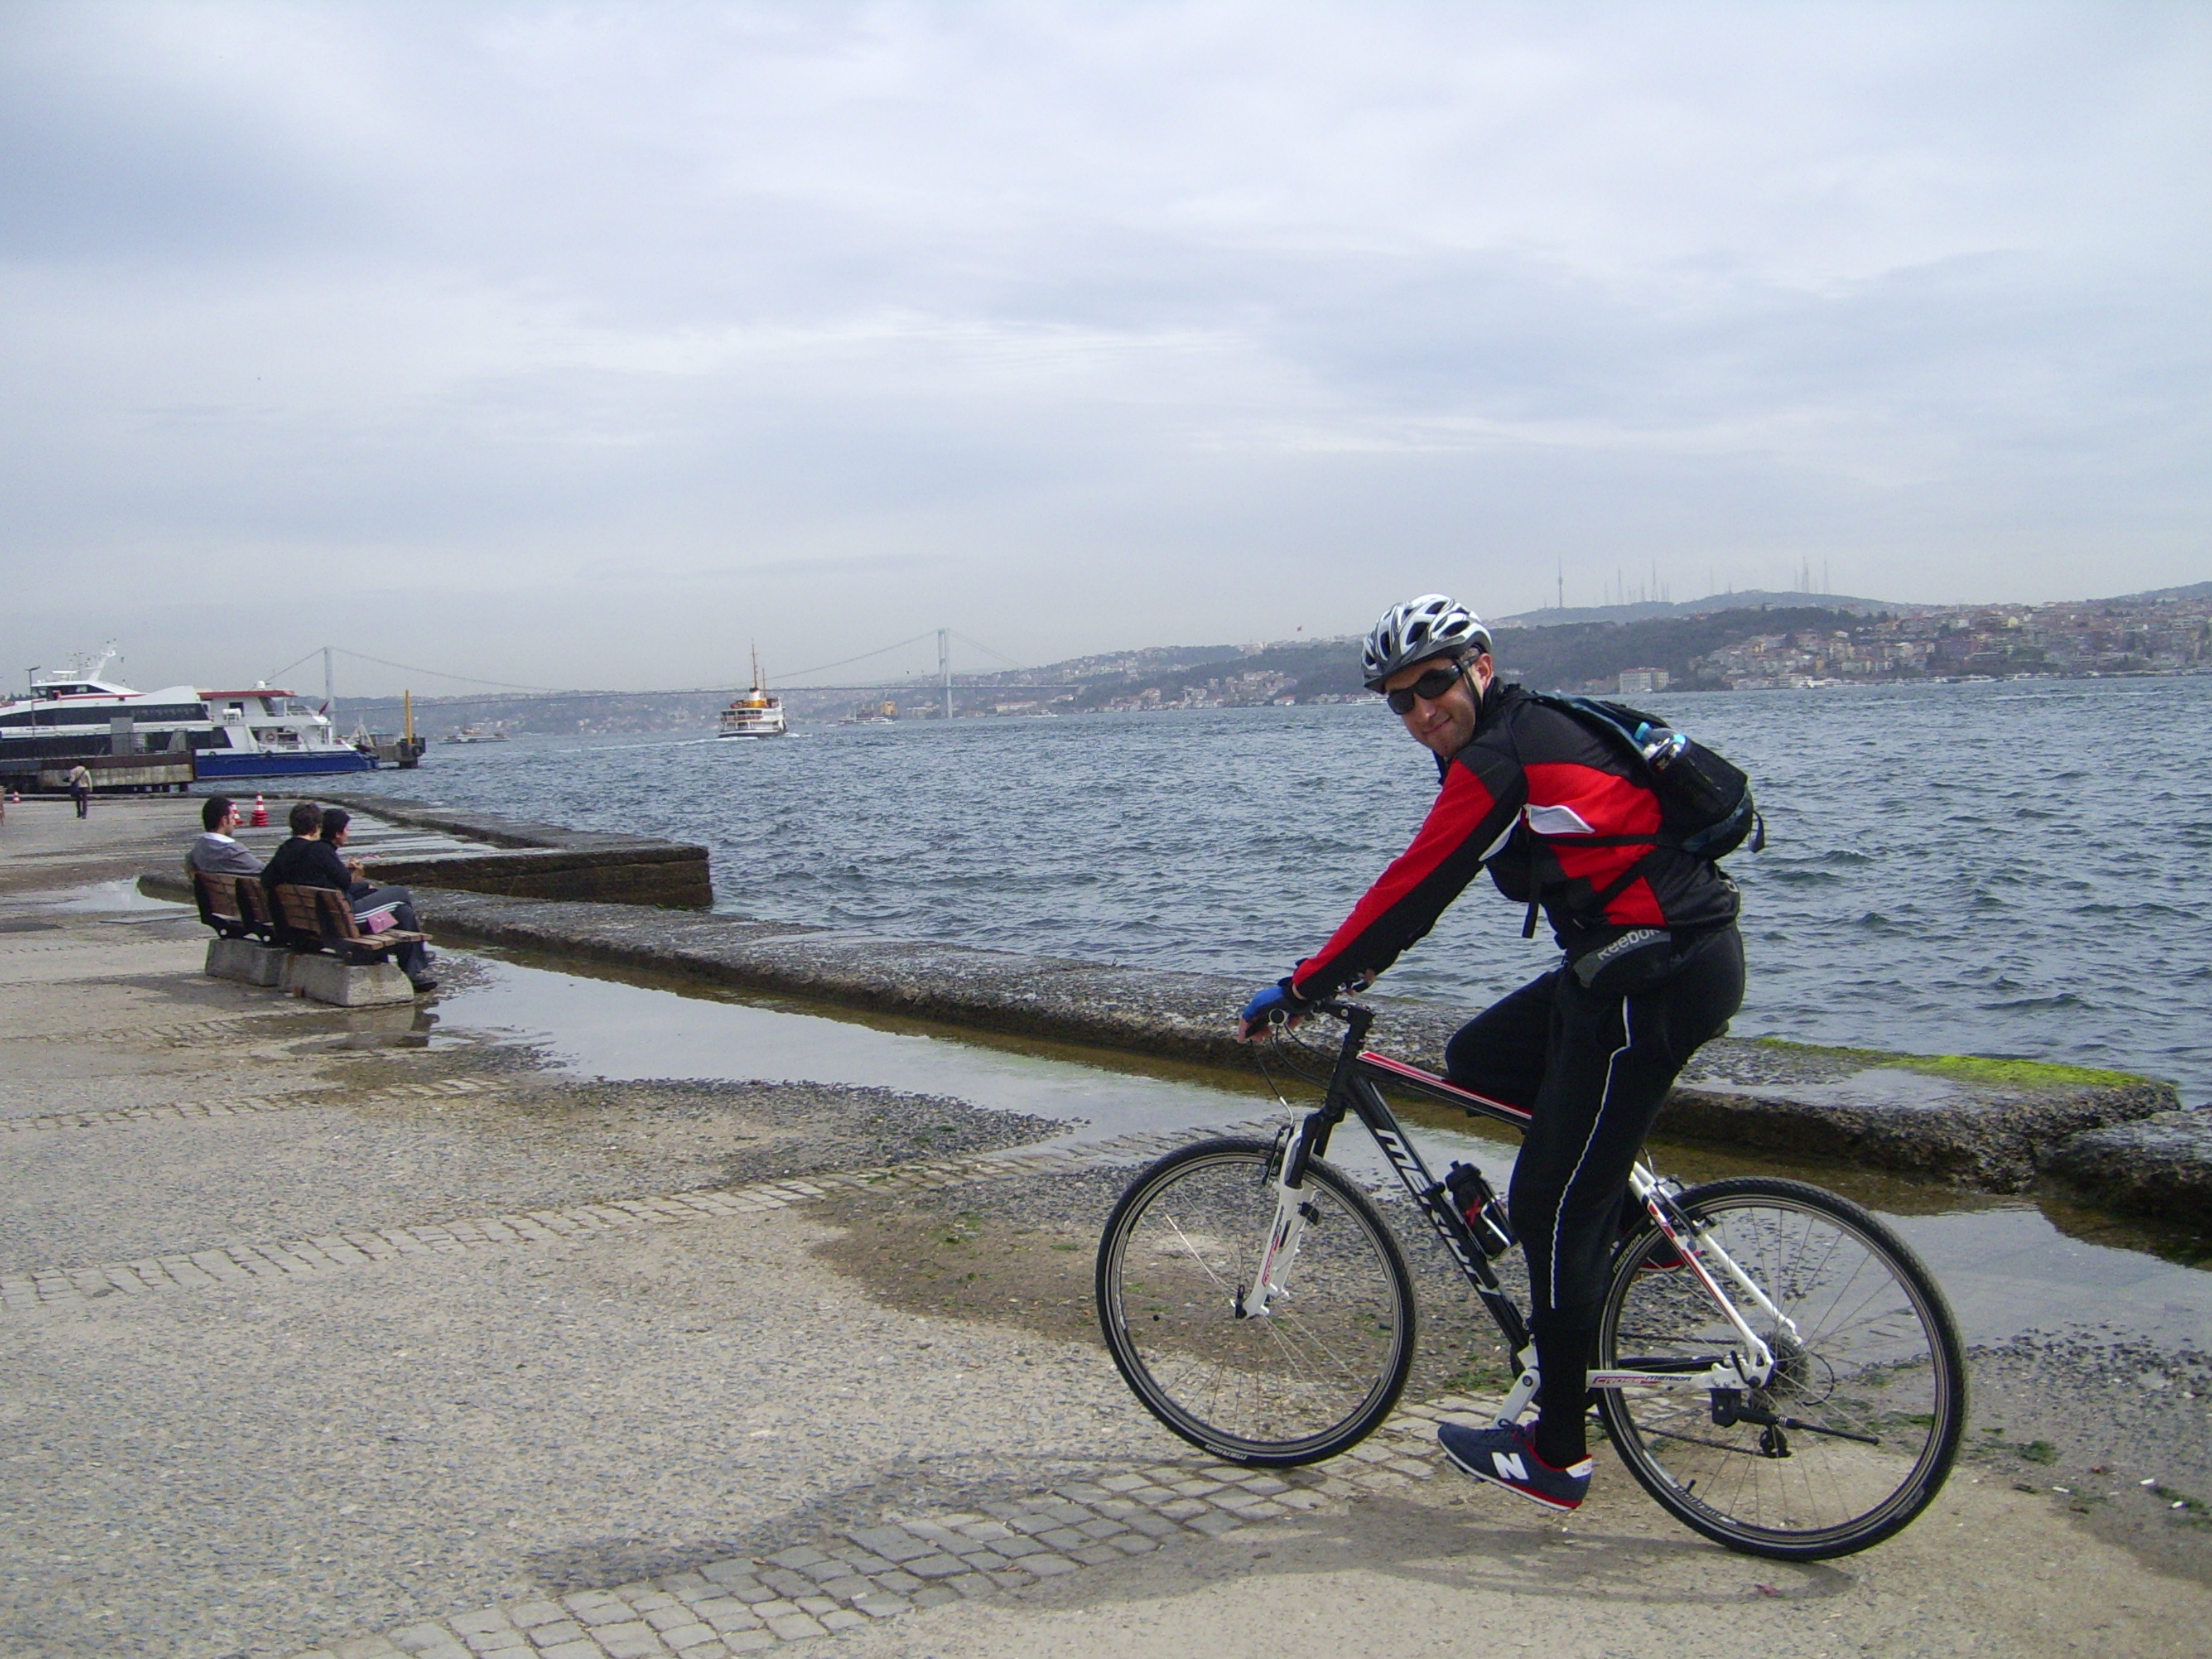 Riding along the Bosphorus waterfront